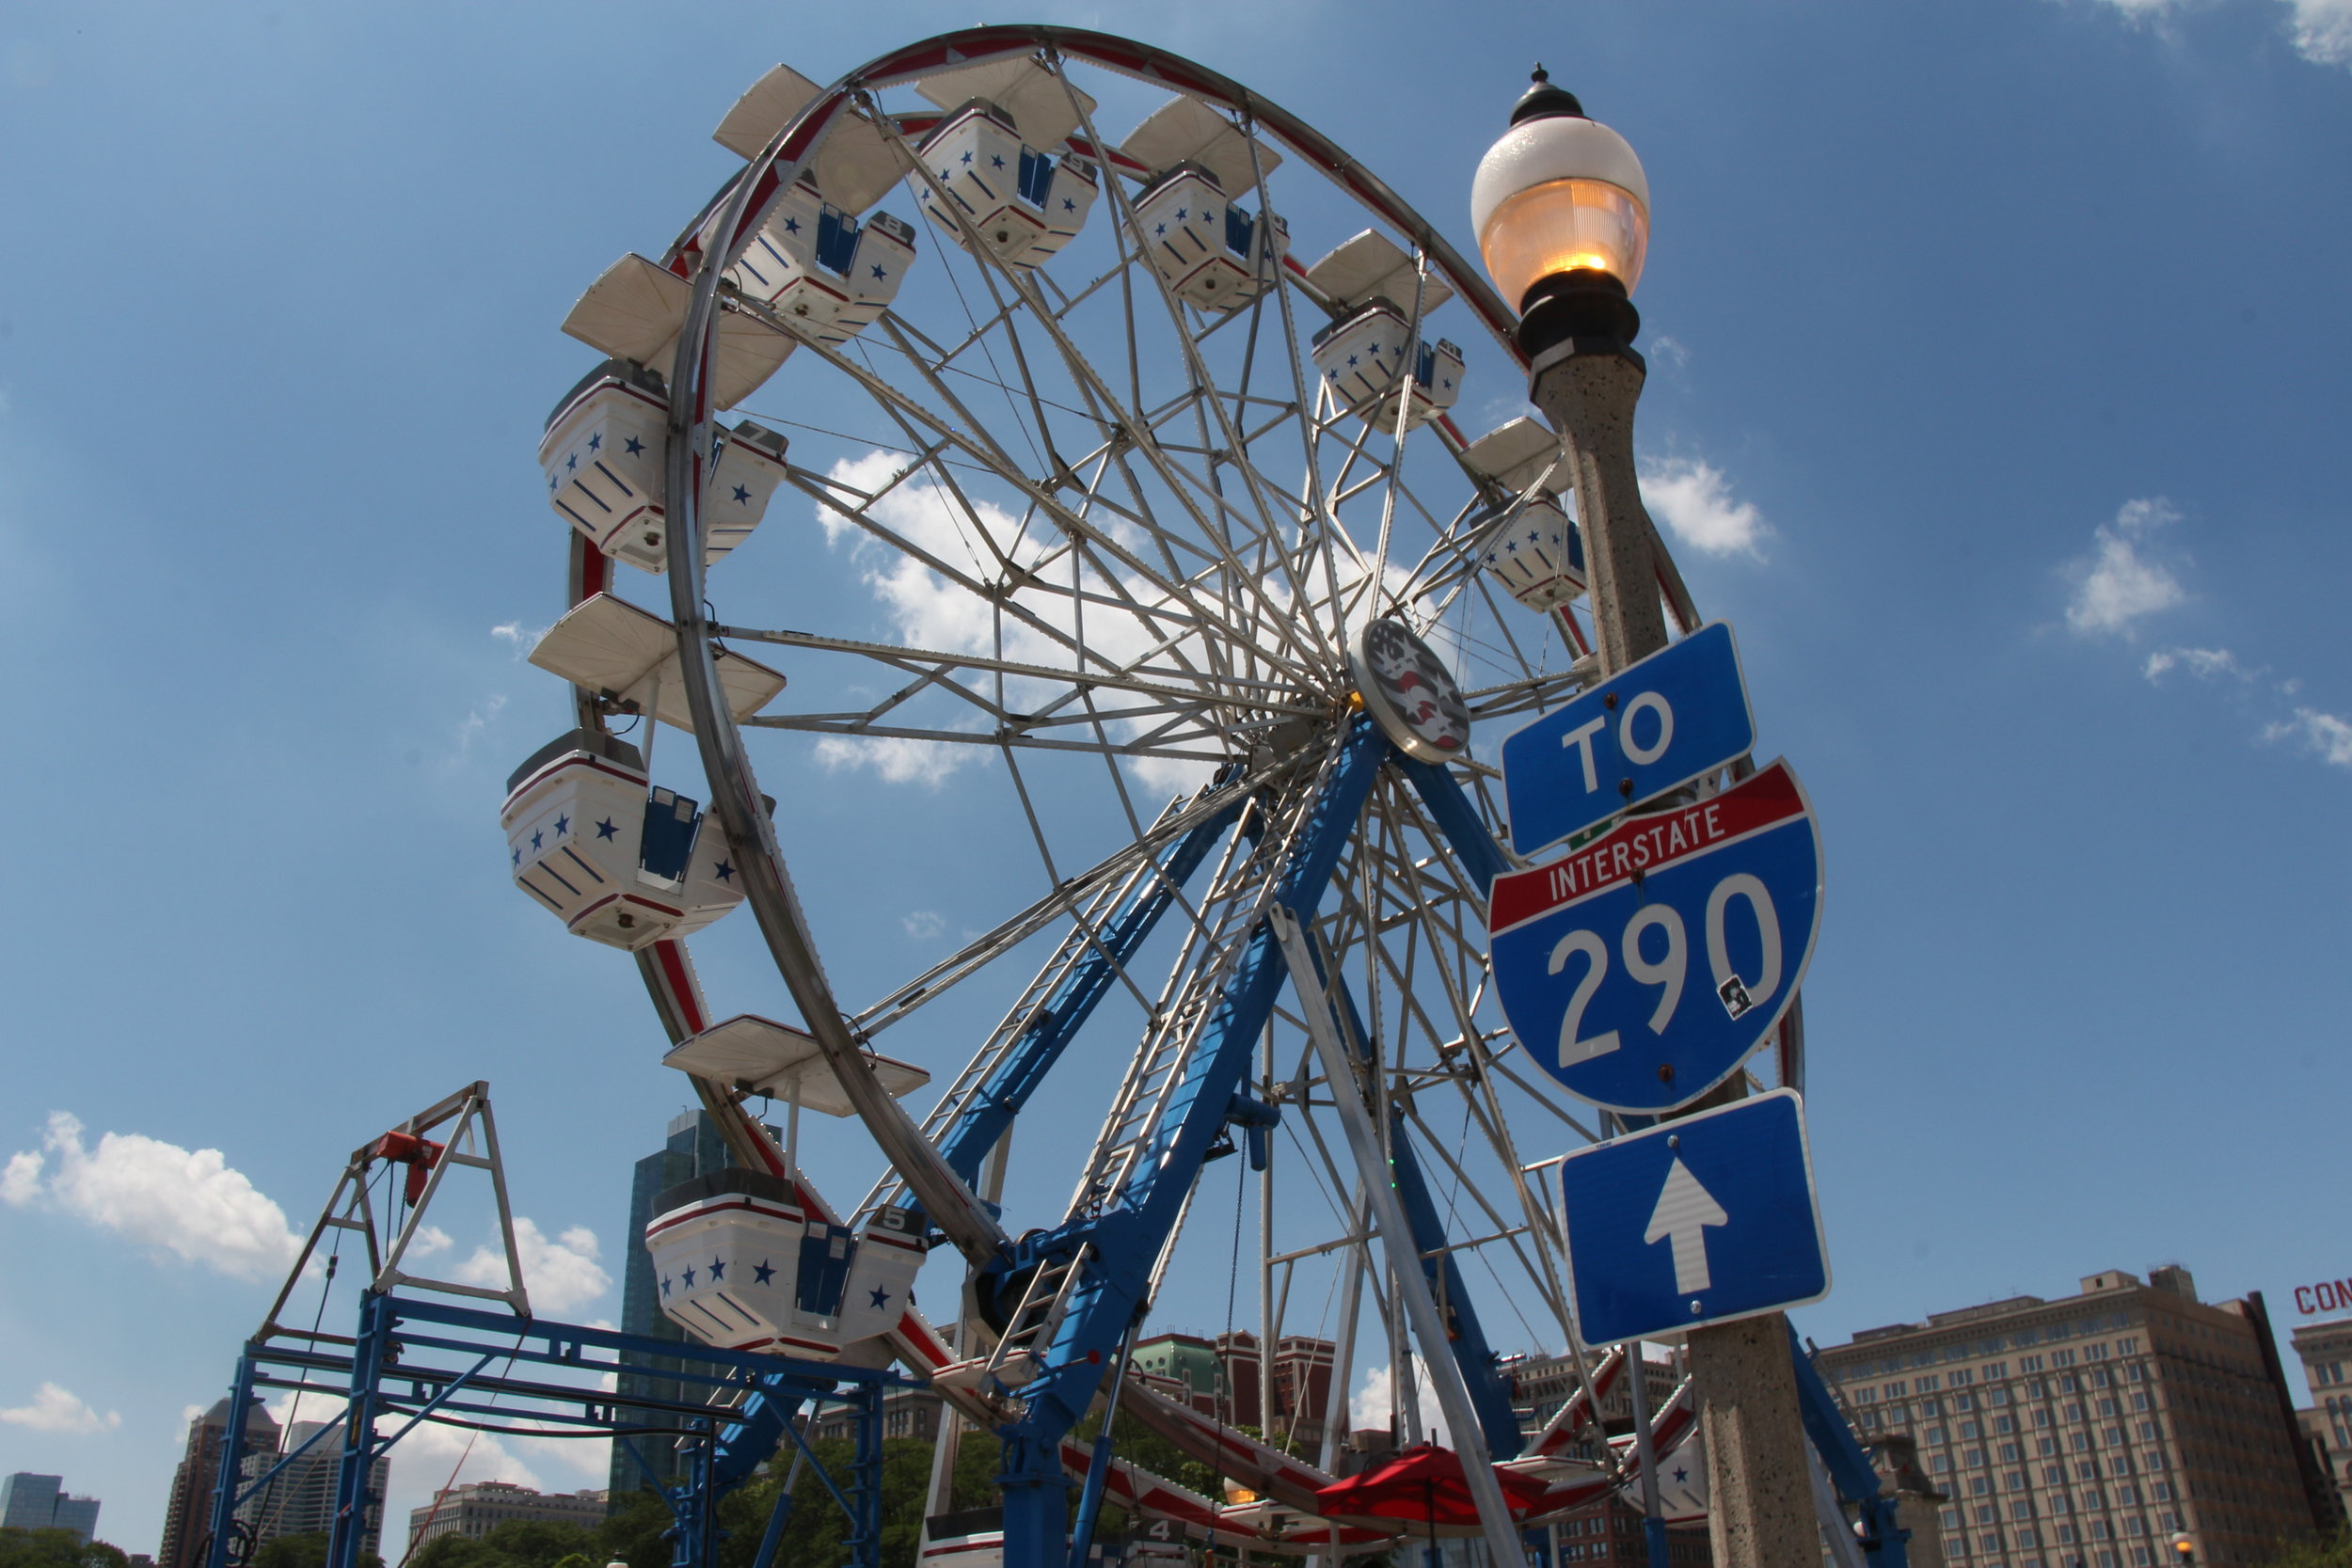 The ferris wheel emphasizing Chicago with the Ike Interstate Sign. Photo by Millie Johnson